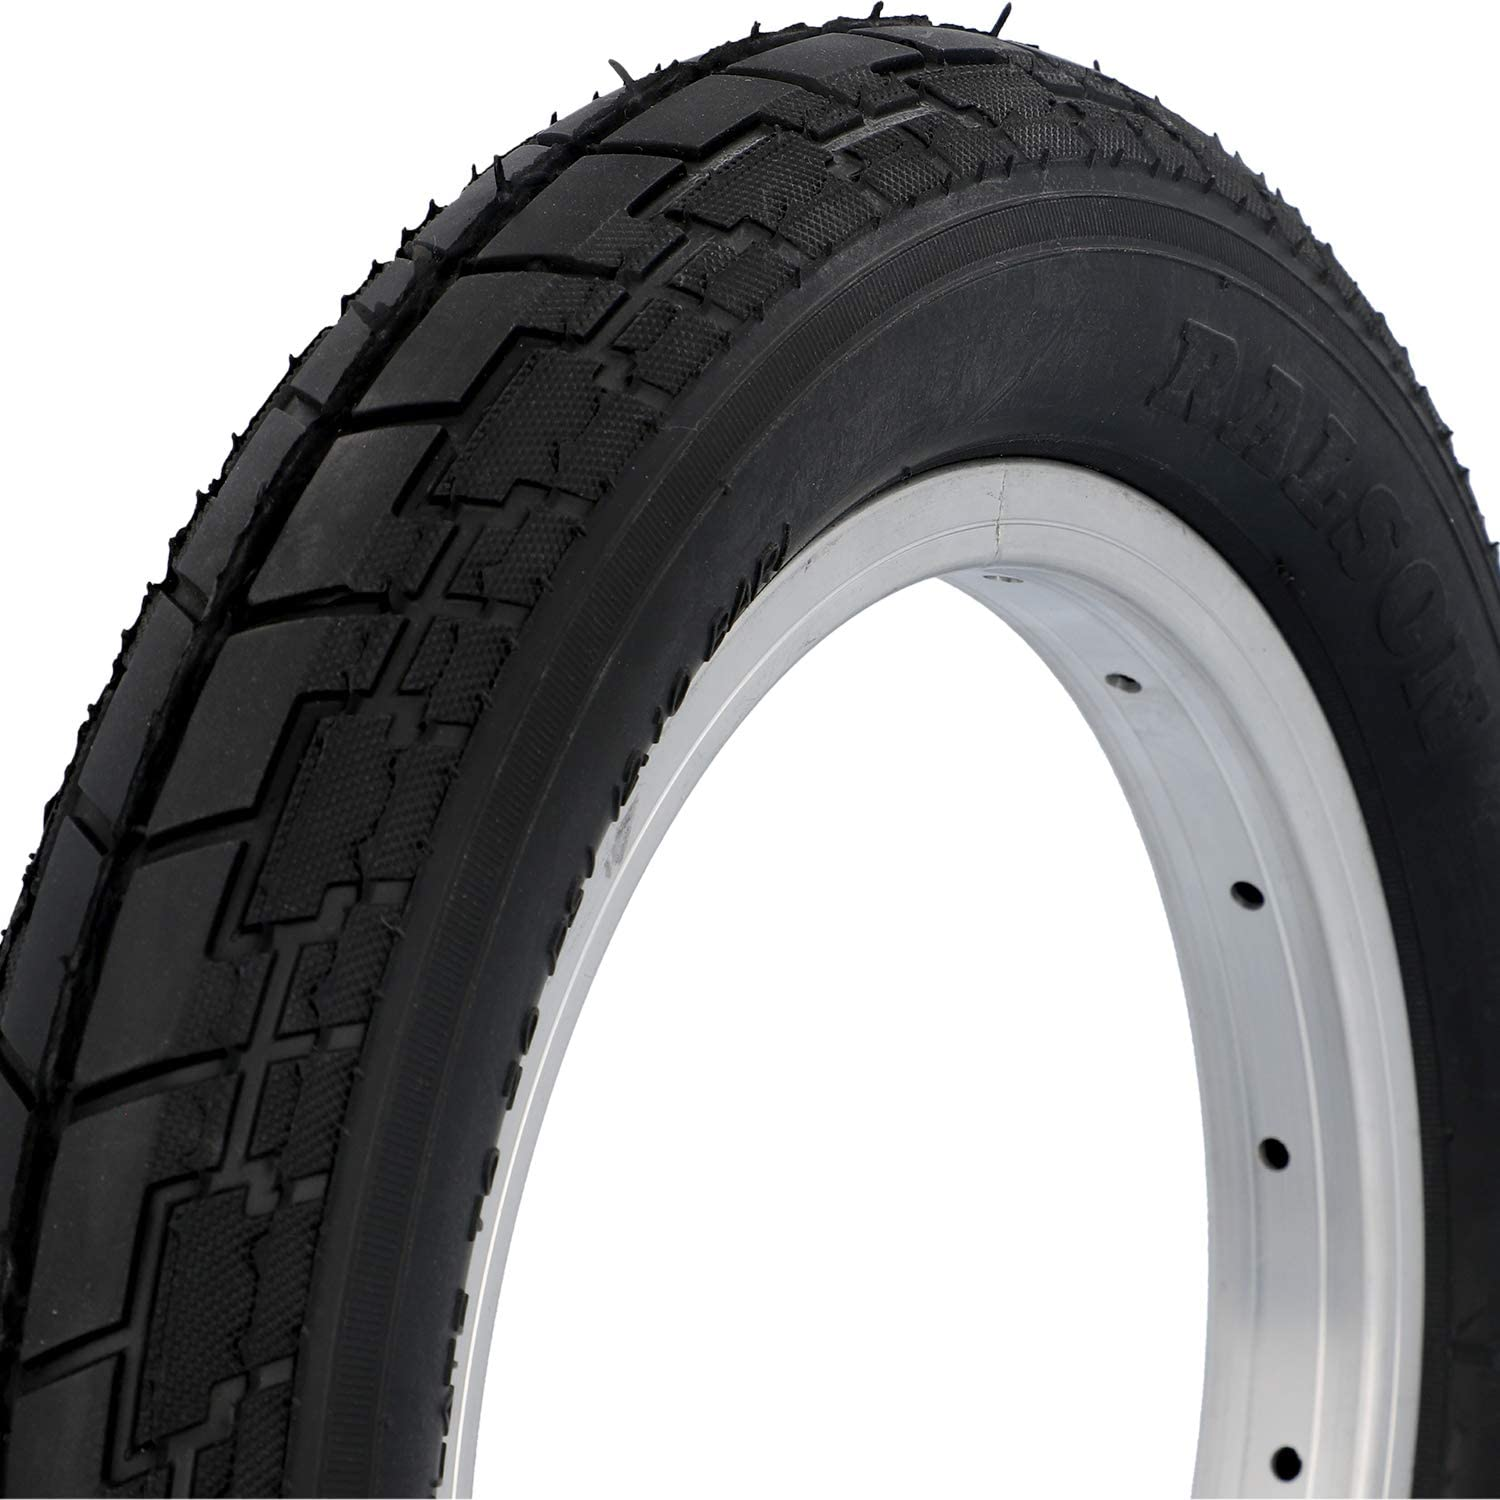 ONE Kenda 12 1//2 X 2 1//4 Inch Bicycle Tire Black